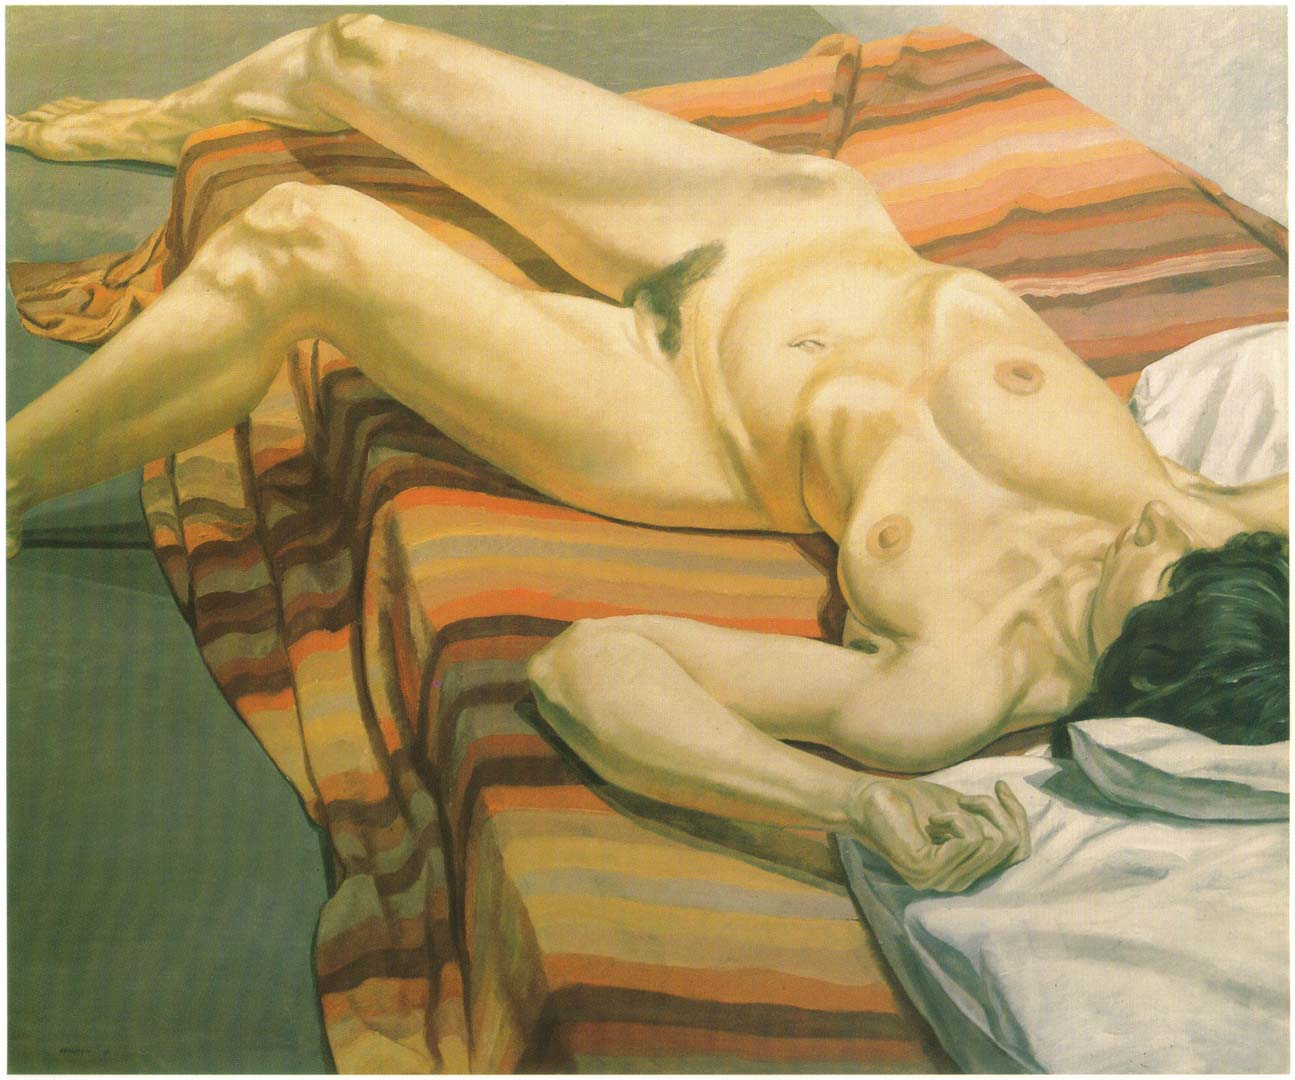 1967 Nude on Striped Drape Oil on Canvas 60 x 72